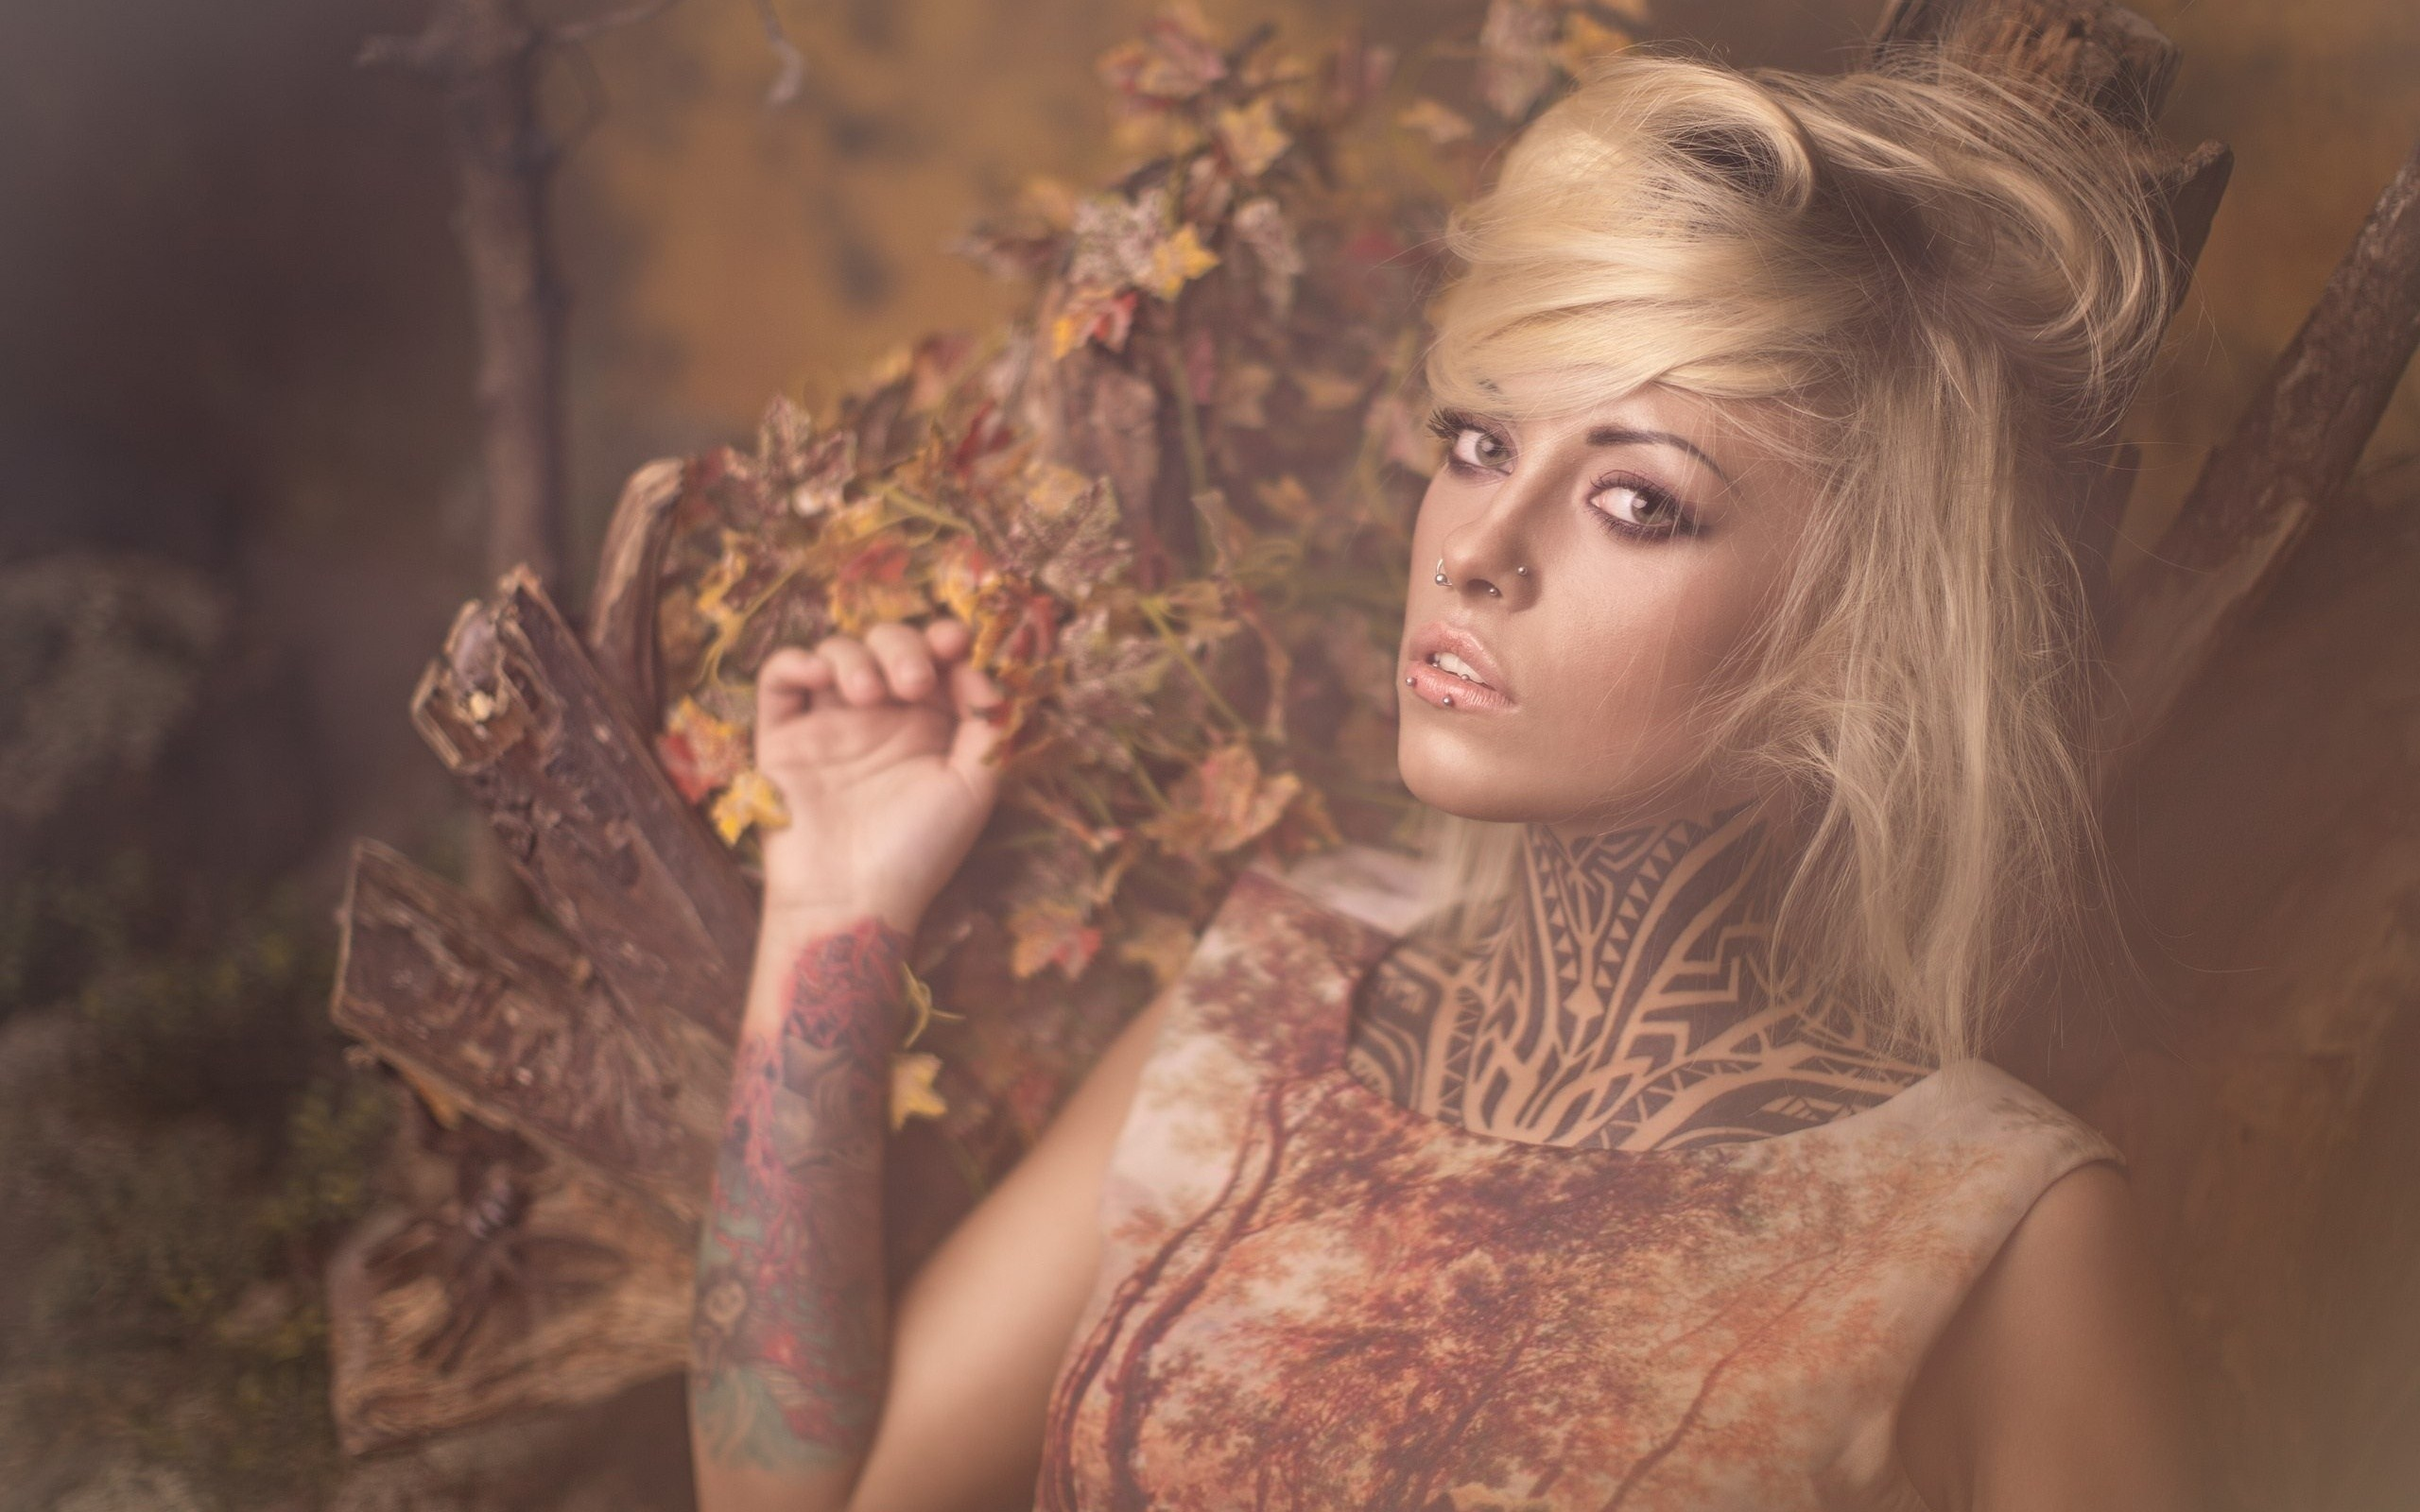 Beauty Blonde Girl with Piercings Tattoos Style Photo HD Wallpaper